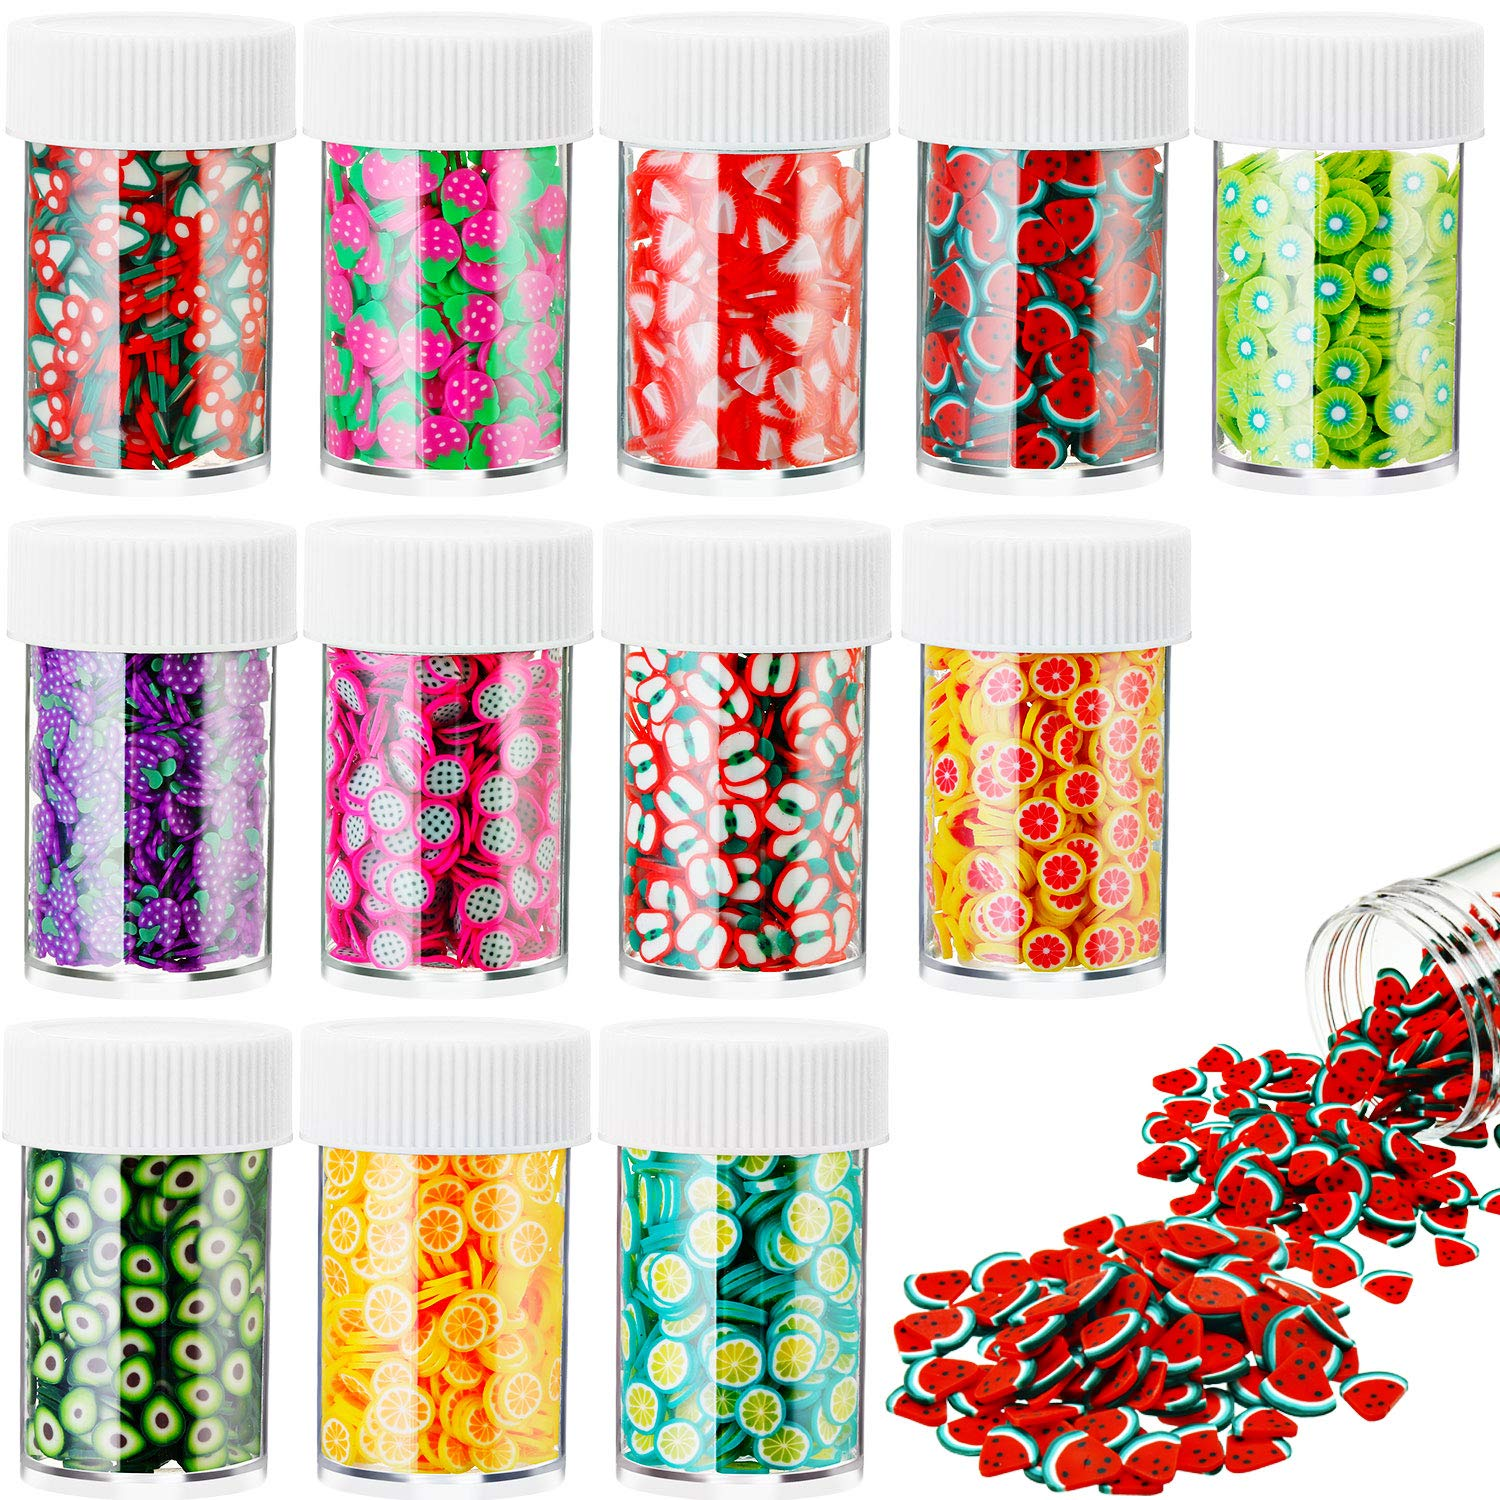 6000 Pieces Nail Art Fruit Slices 3D Polymer Assorted Pattern Nail Slices Colorful DIY Nail Art Slime Supplies for DIY Crafts Slime Making Cellphone Decorations, 12 Styles (Fruit Theme)